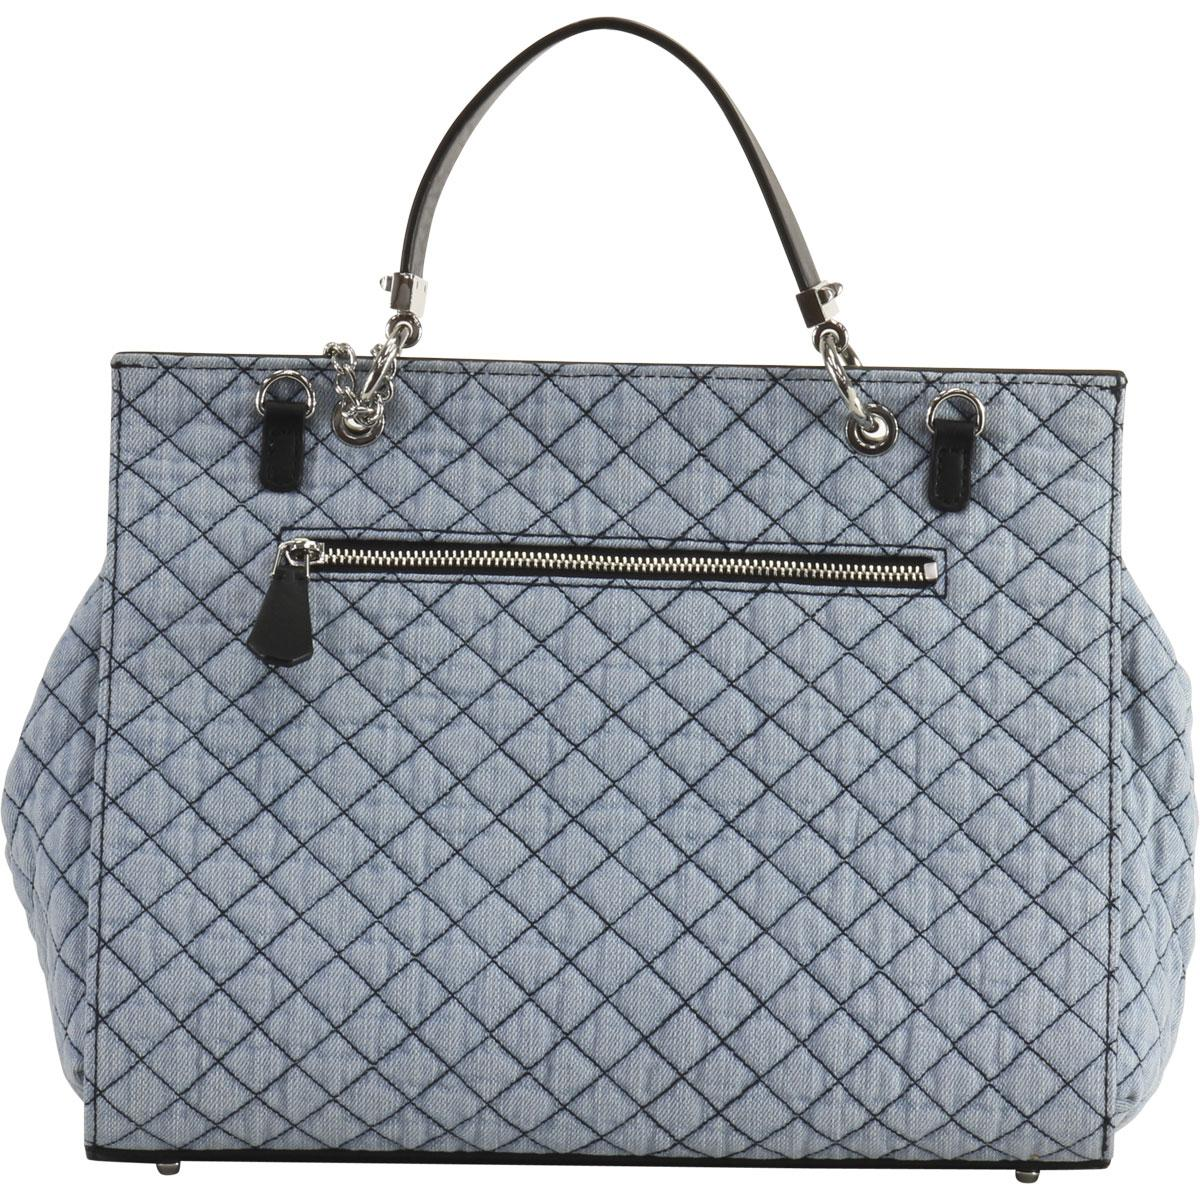 4a22a59496 Guess Women s Rochelle Quilted Top Handle Flap Handbag by Guess